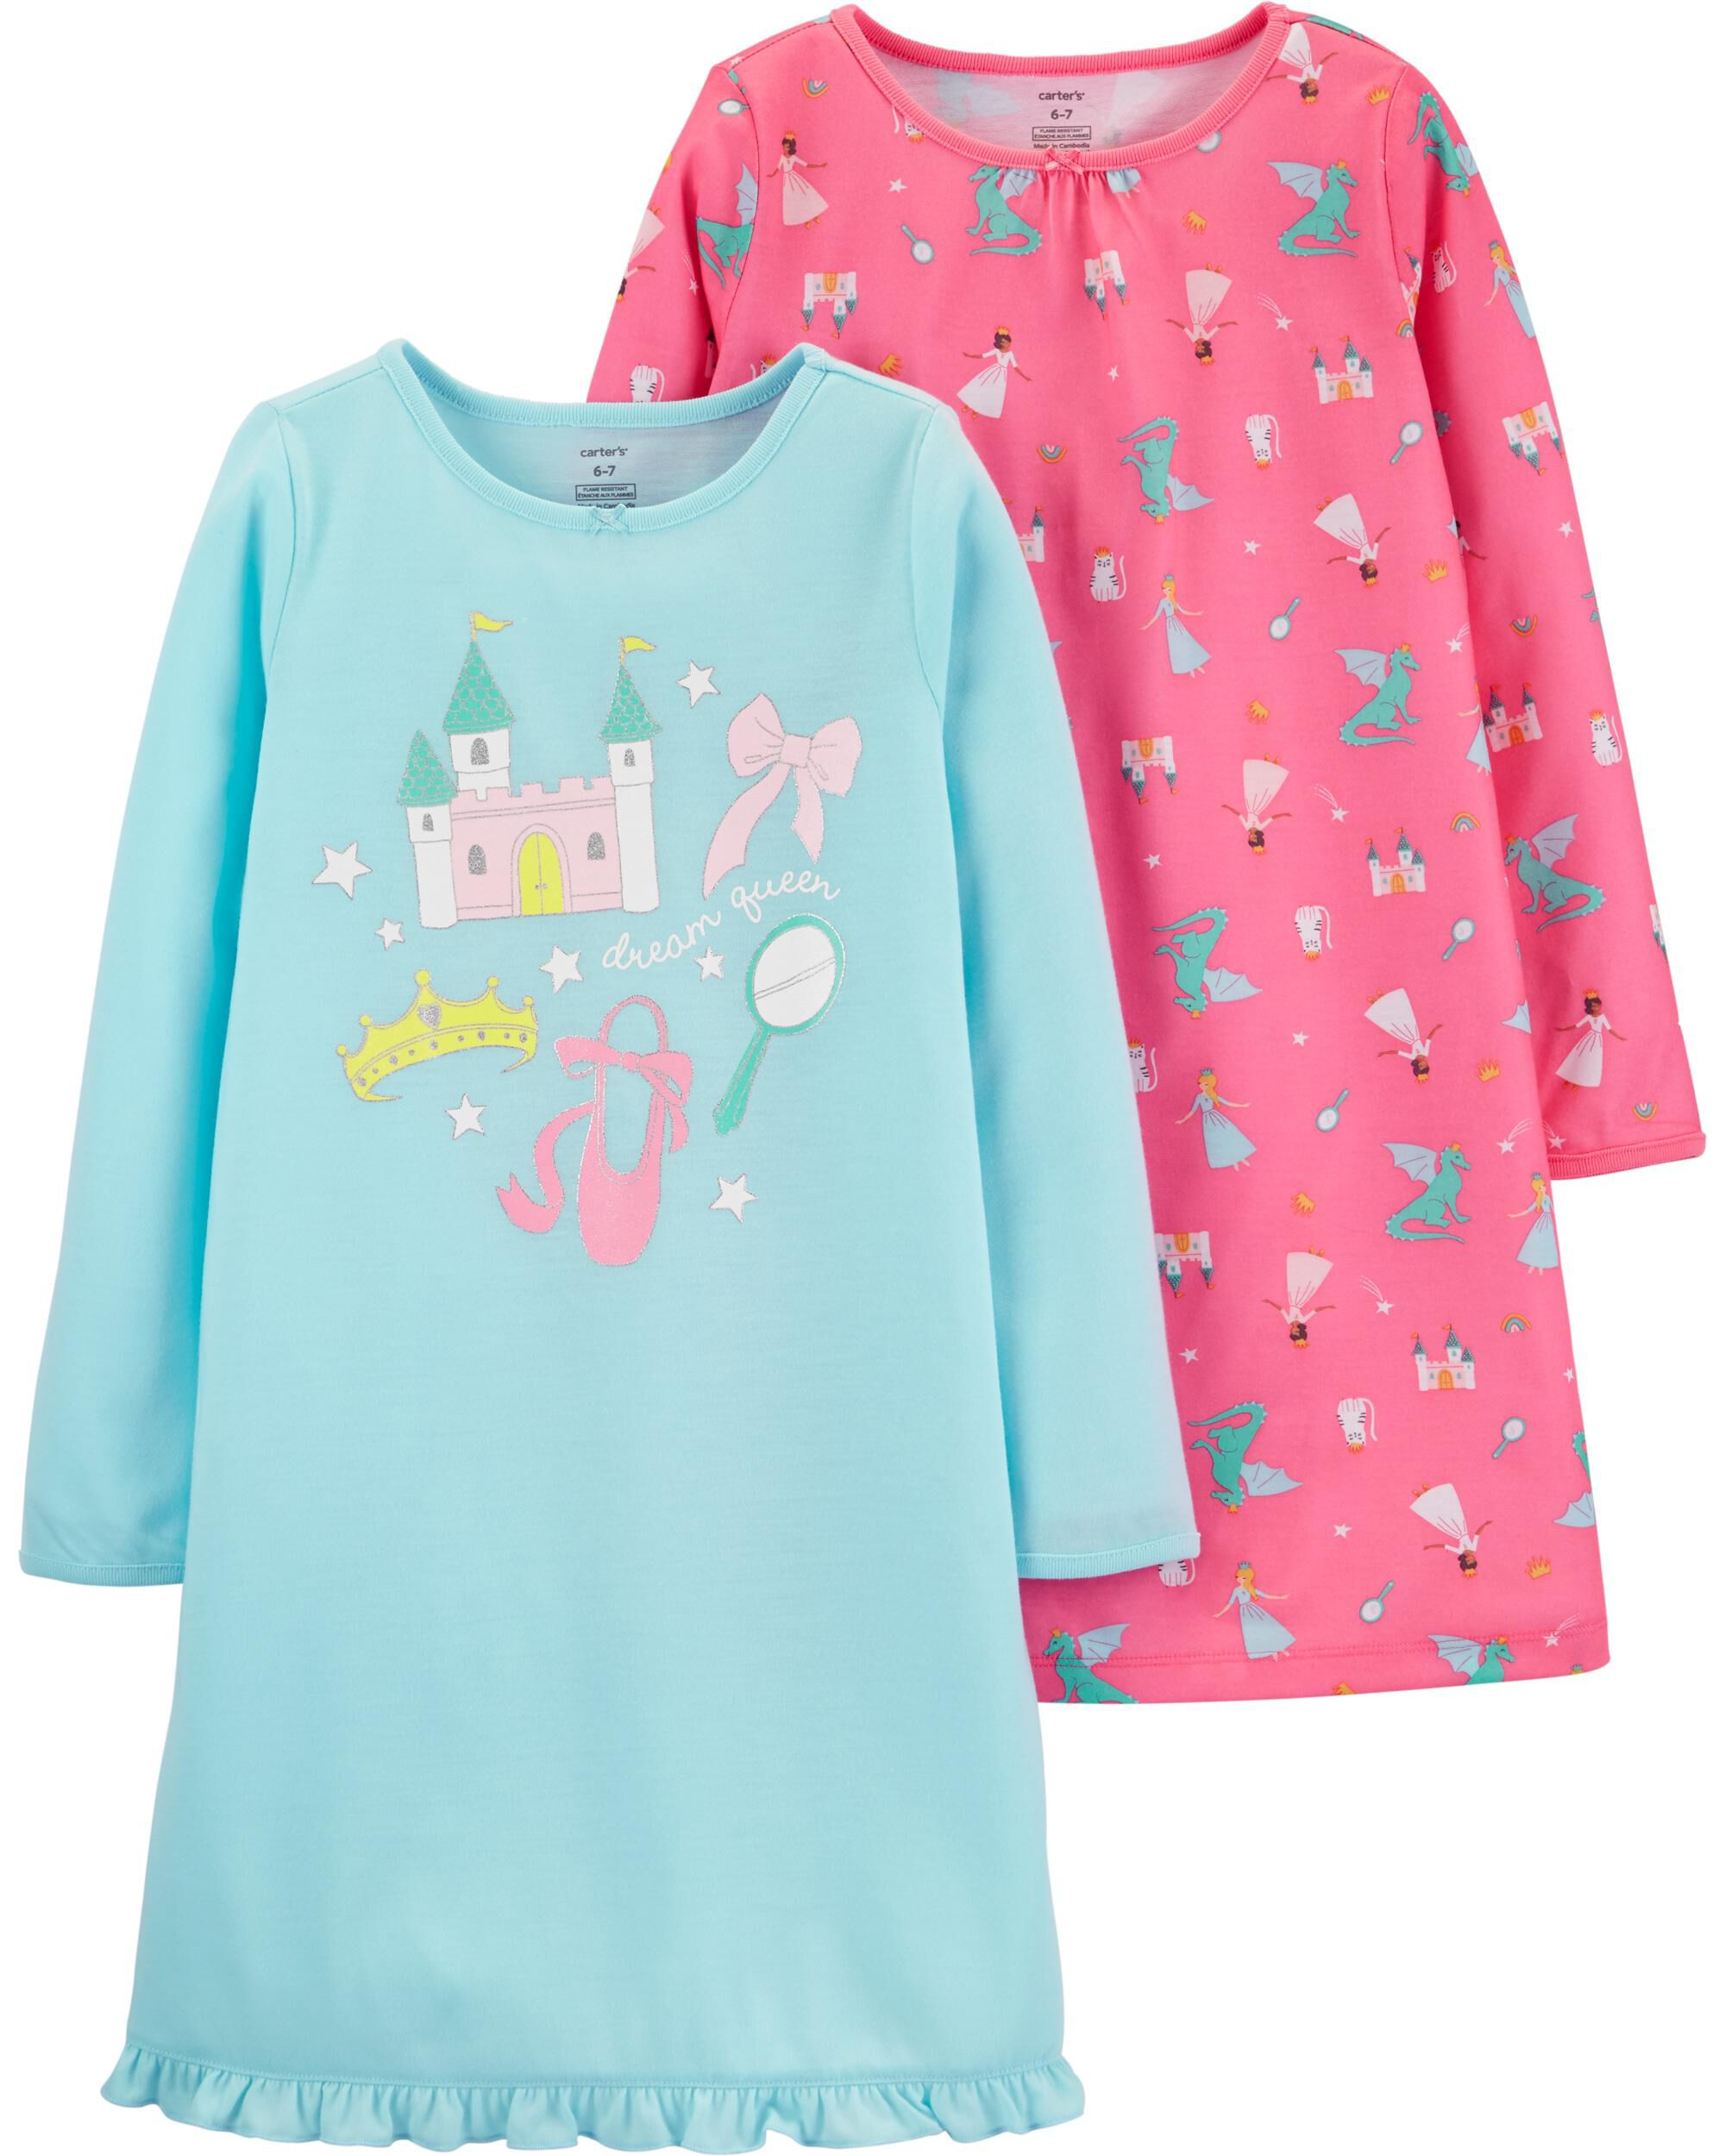 2-Pack Princess Nightgowns